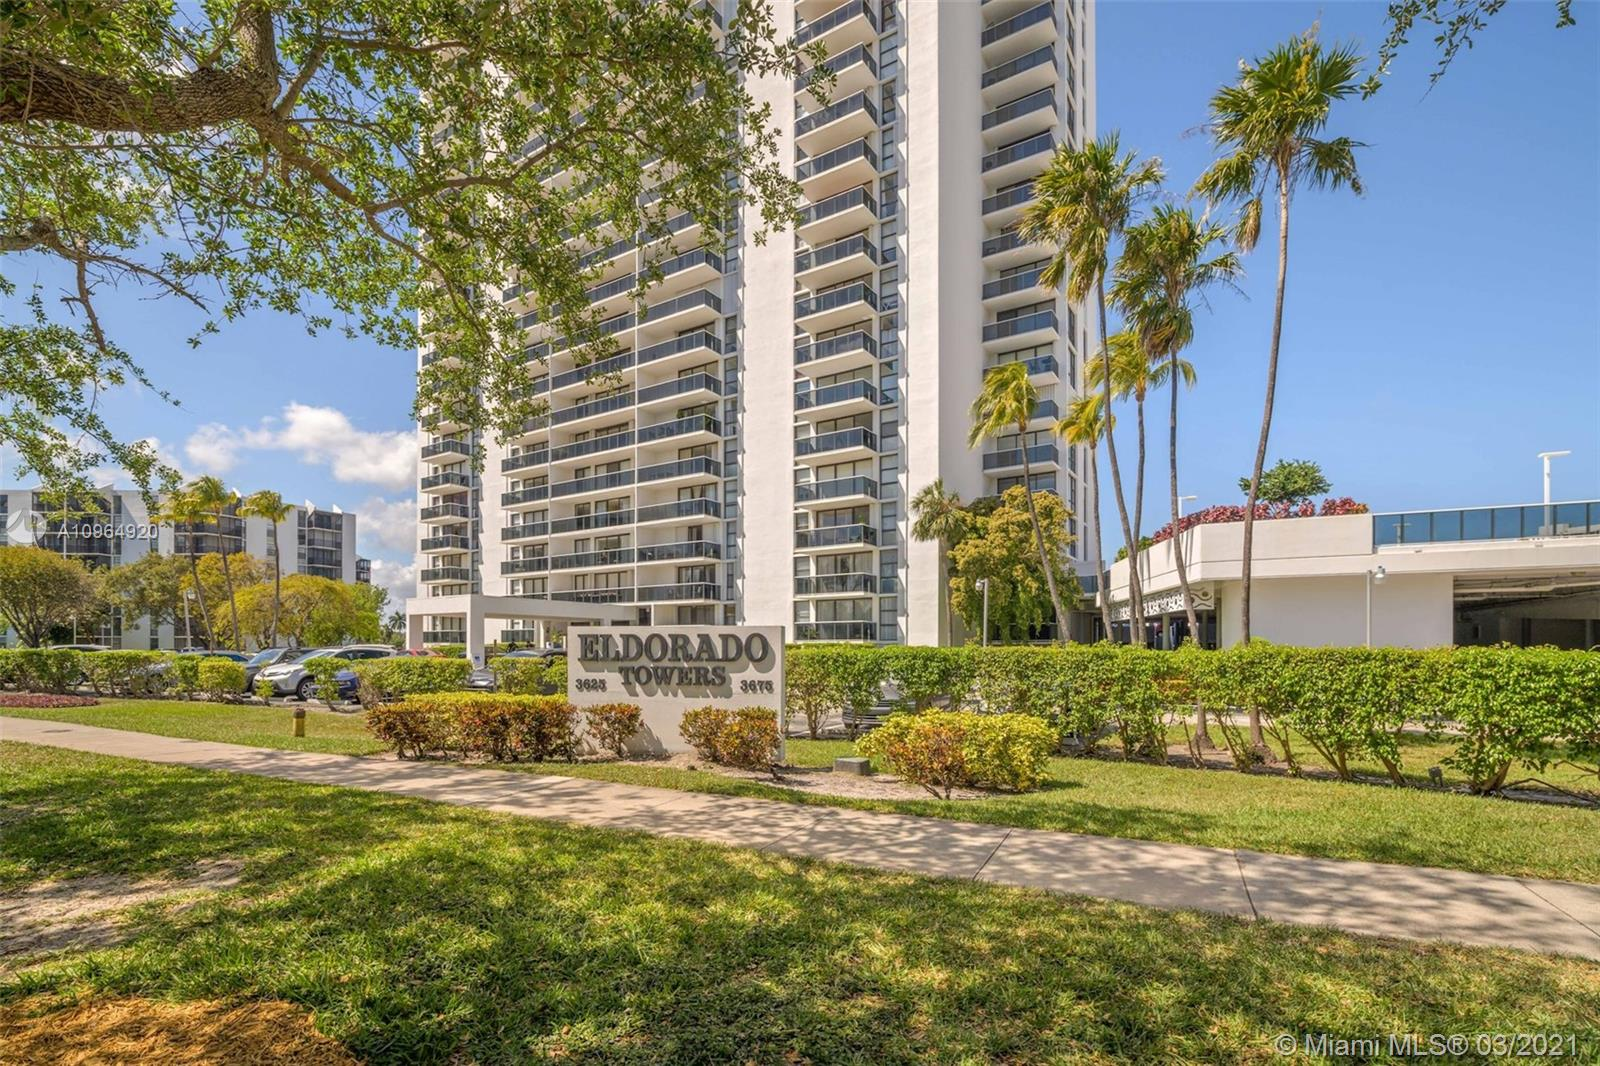 Eldorado Tower One #1004 - 3625 N Country Club Dr #1004, Aventura, FL 33180